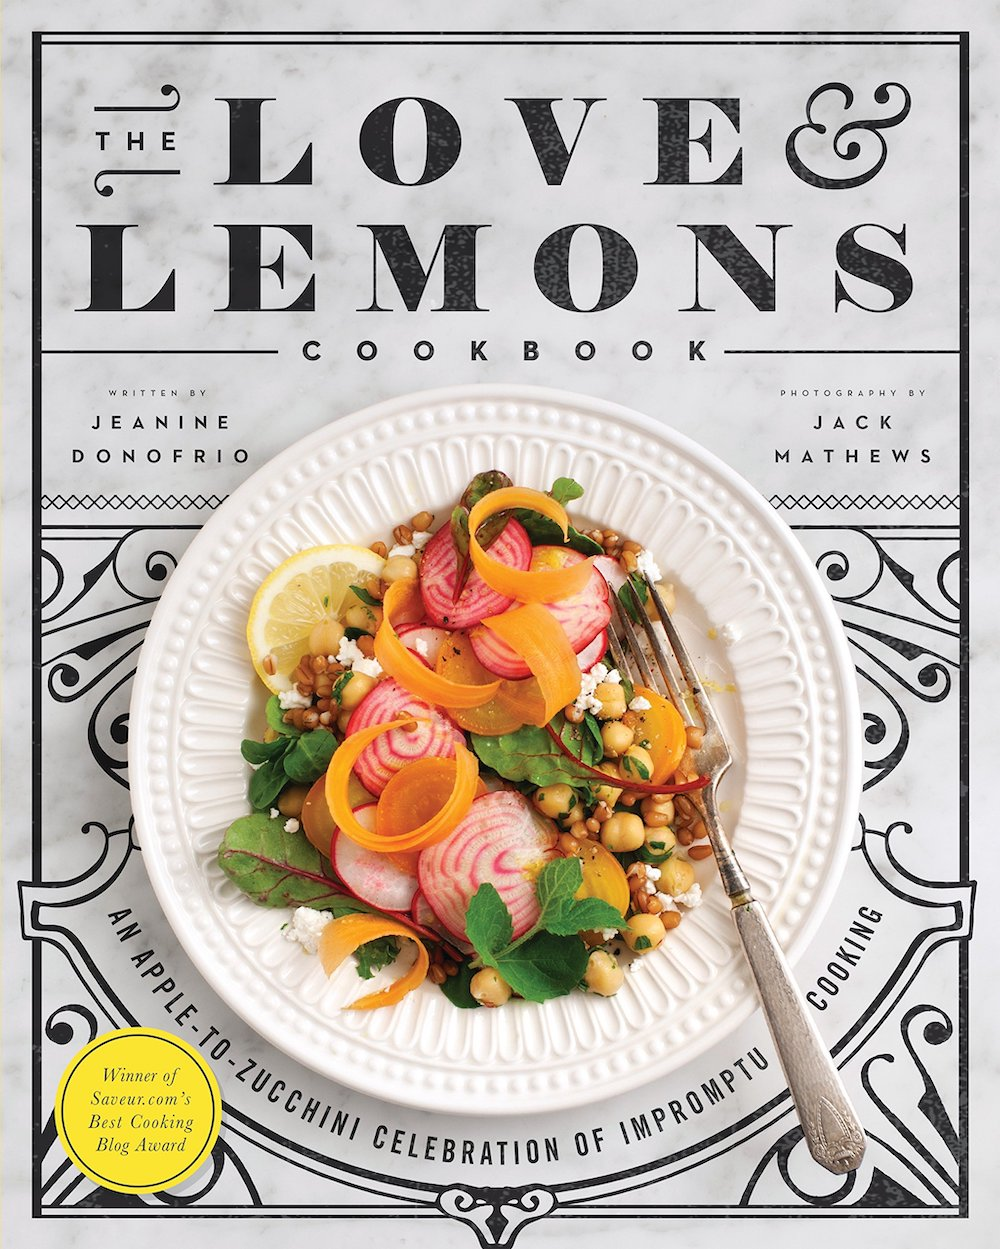 The Love & Lemons Cookbook by Jeanine Donofrio, vegetarian vegan cook book ideas